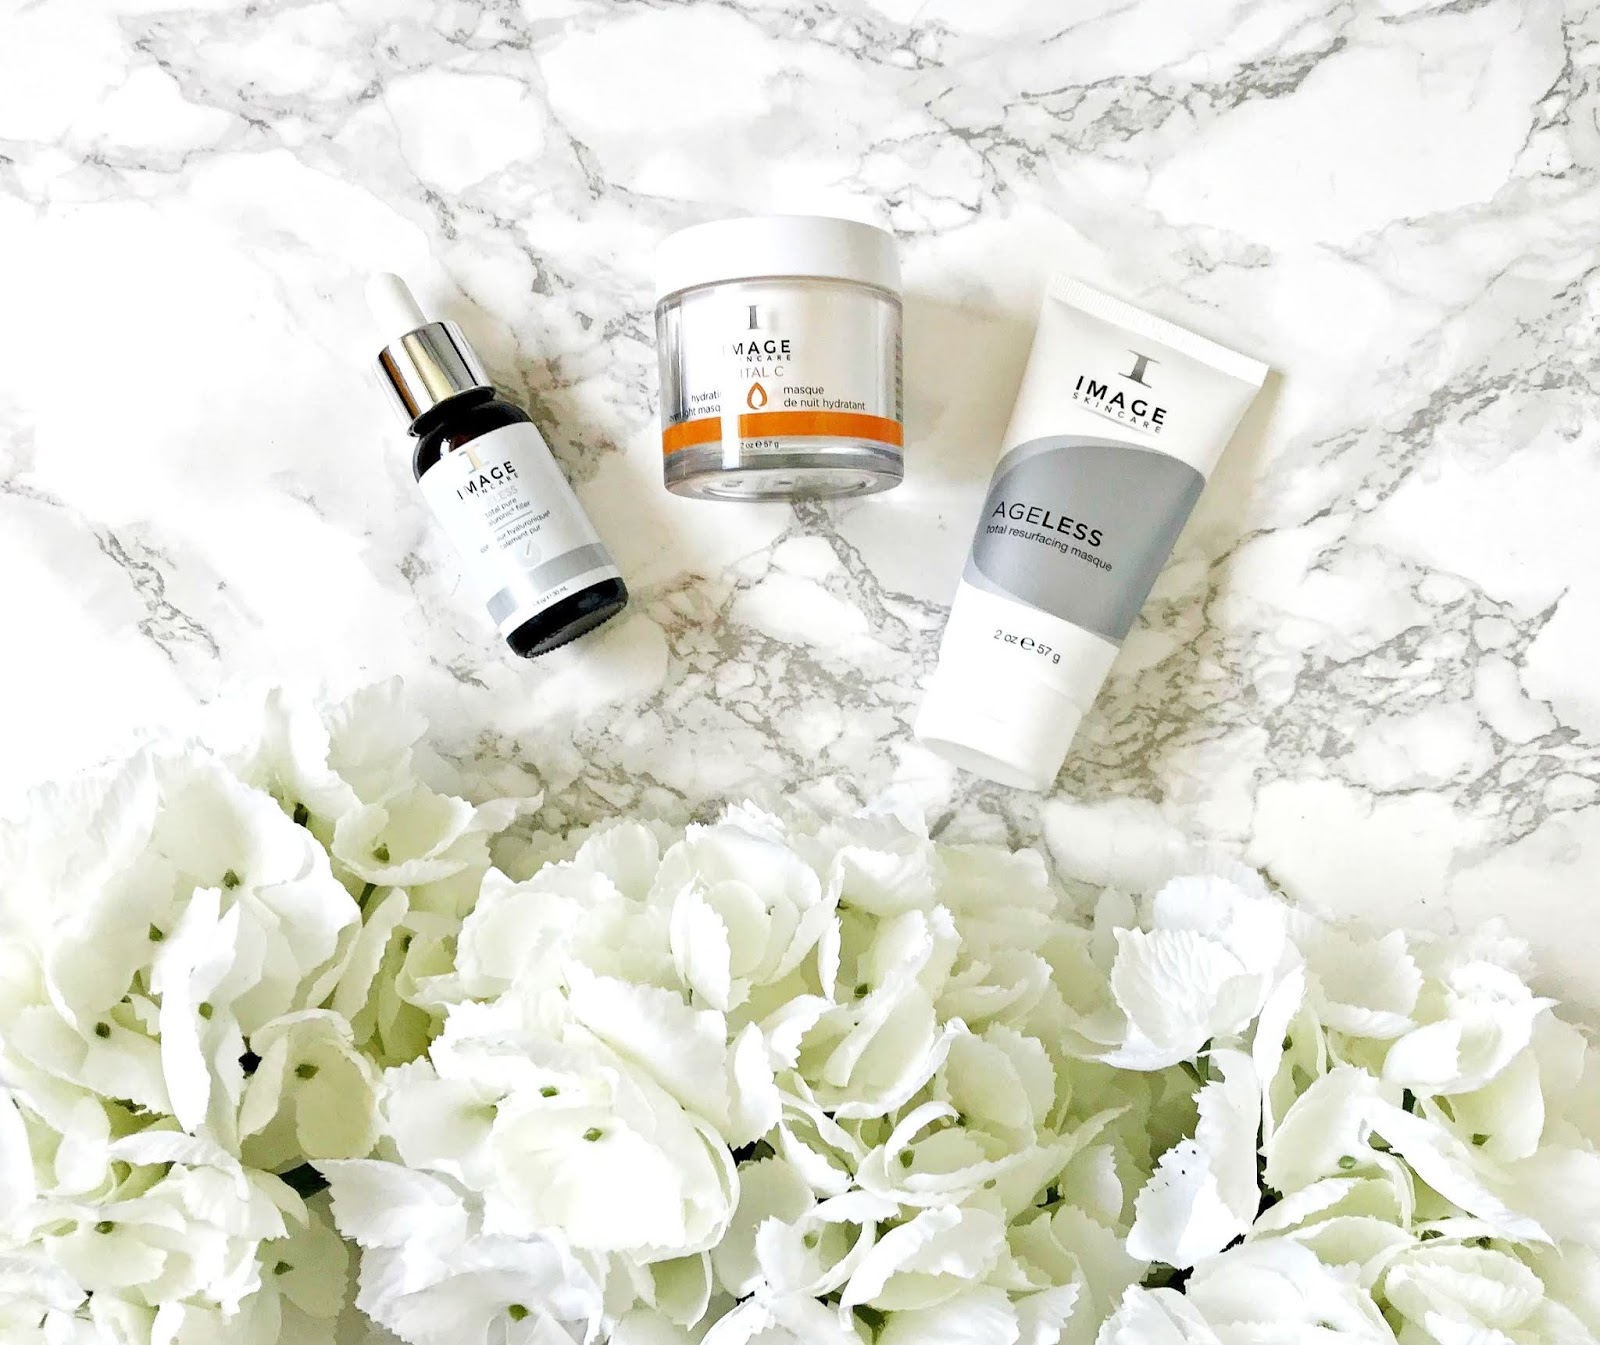 Image, Skincare, Vital C, Total Pure Hyaluronic Filler, Serum, Total Resurfacing Masque, Vital C Hydrating Overnight Masque, Review,